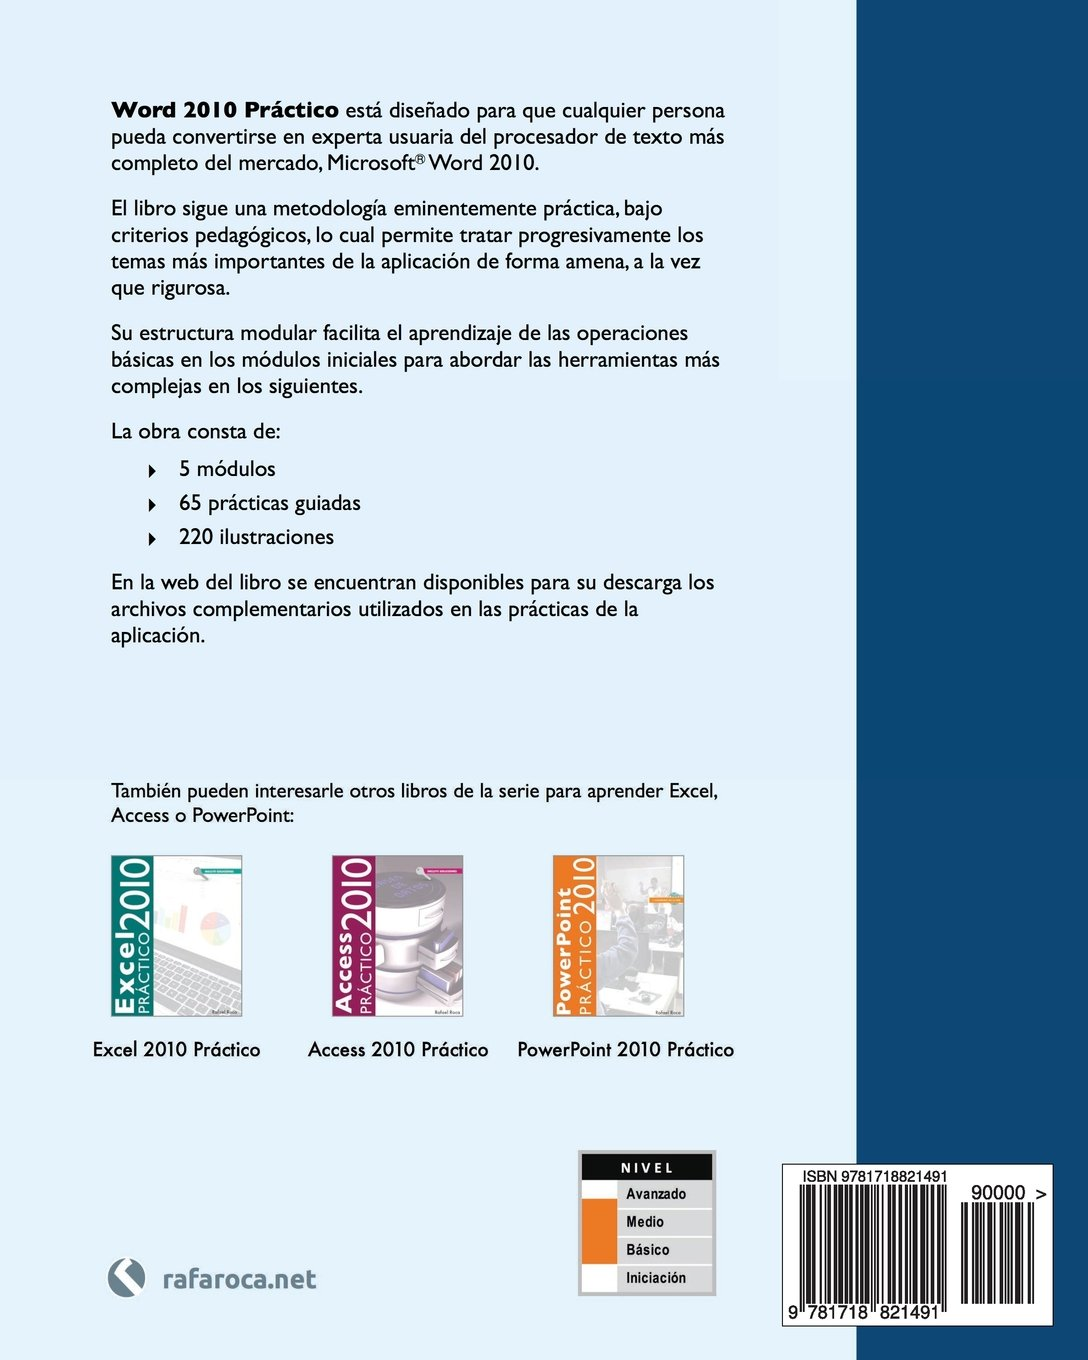 Amazon.com: Word 2010 Práctico (Spanish Edition) (9781718821491): Rafael Roca: Books